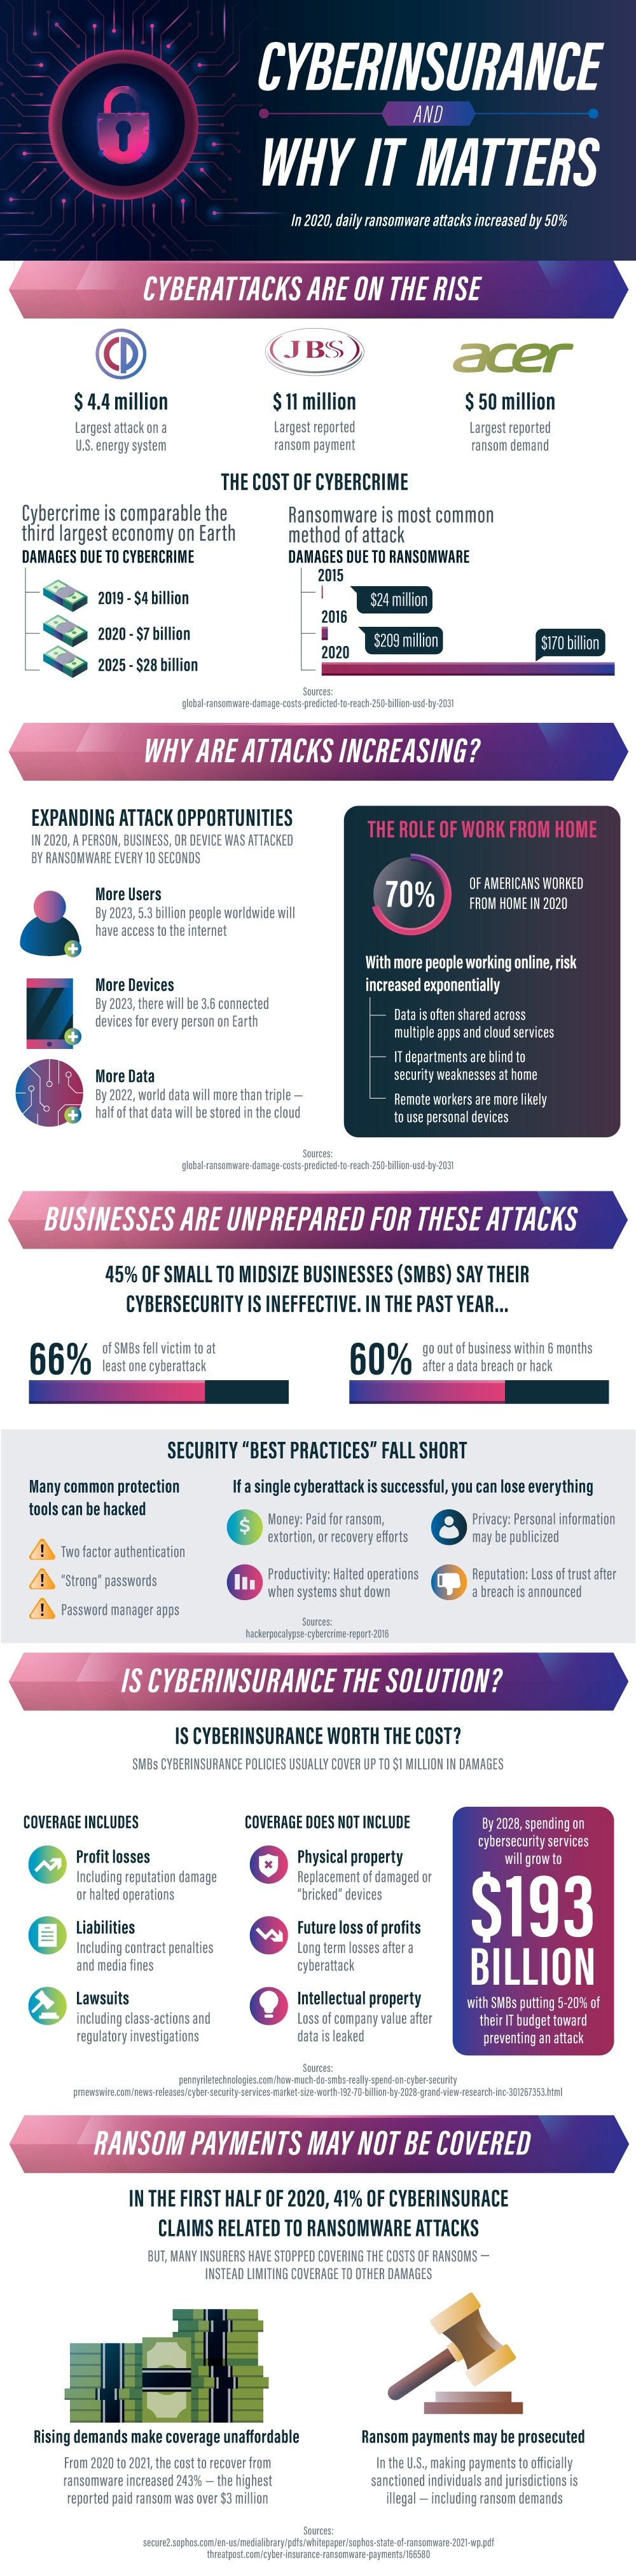 Infographic about Cyber Insurance